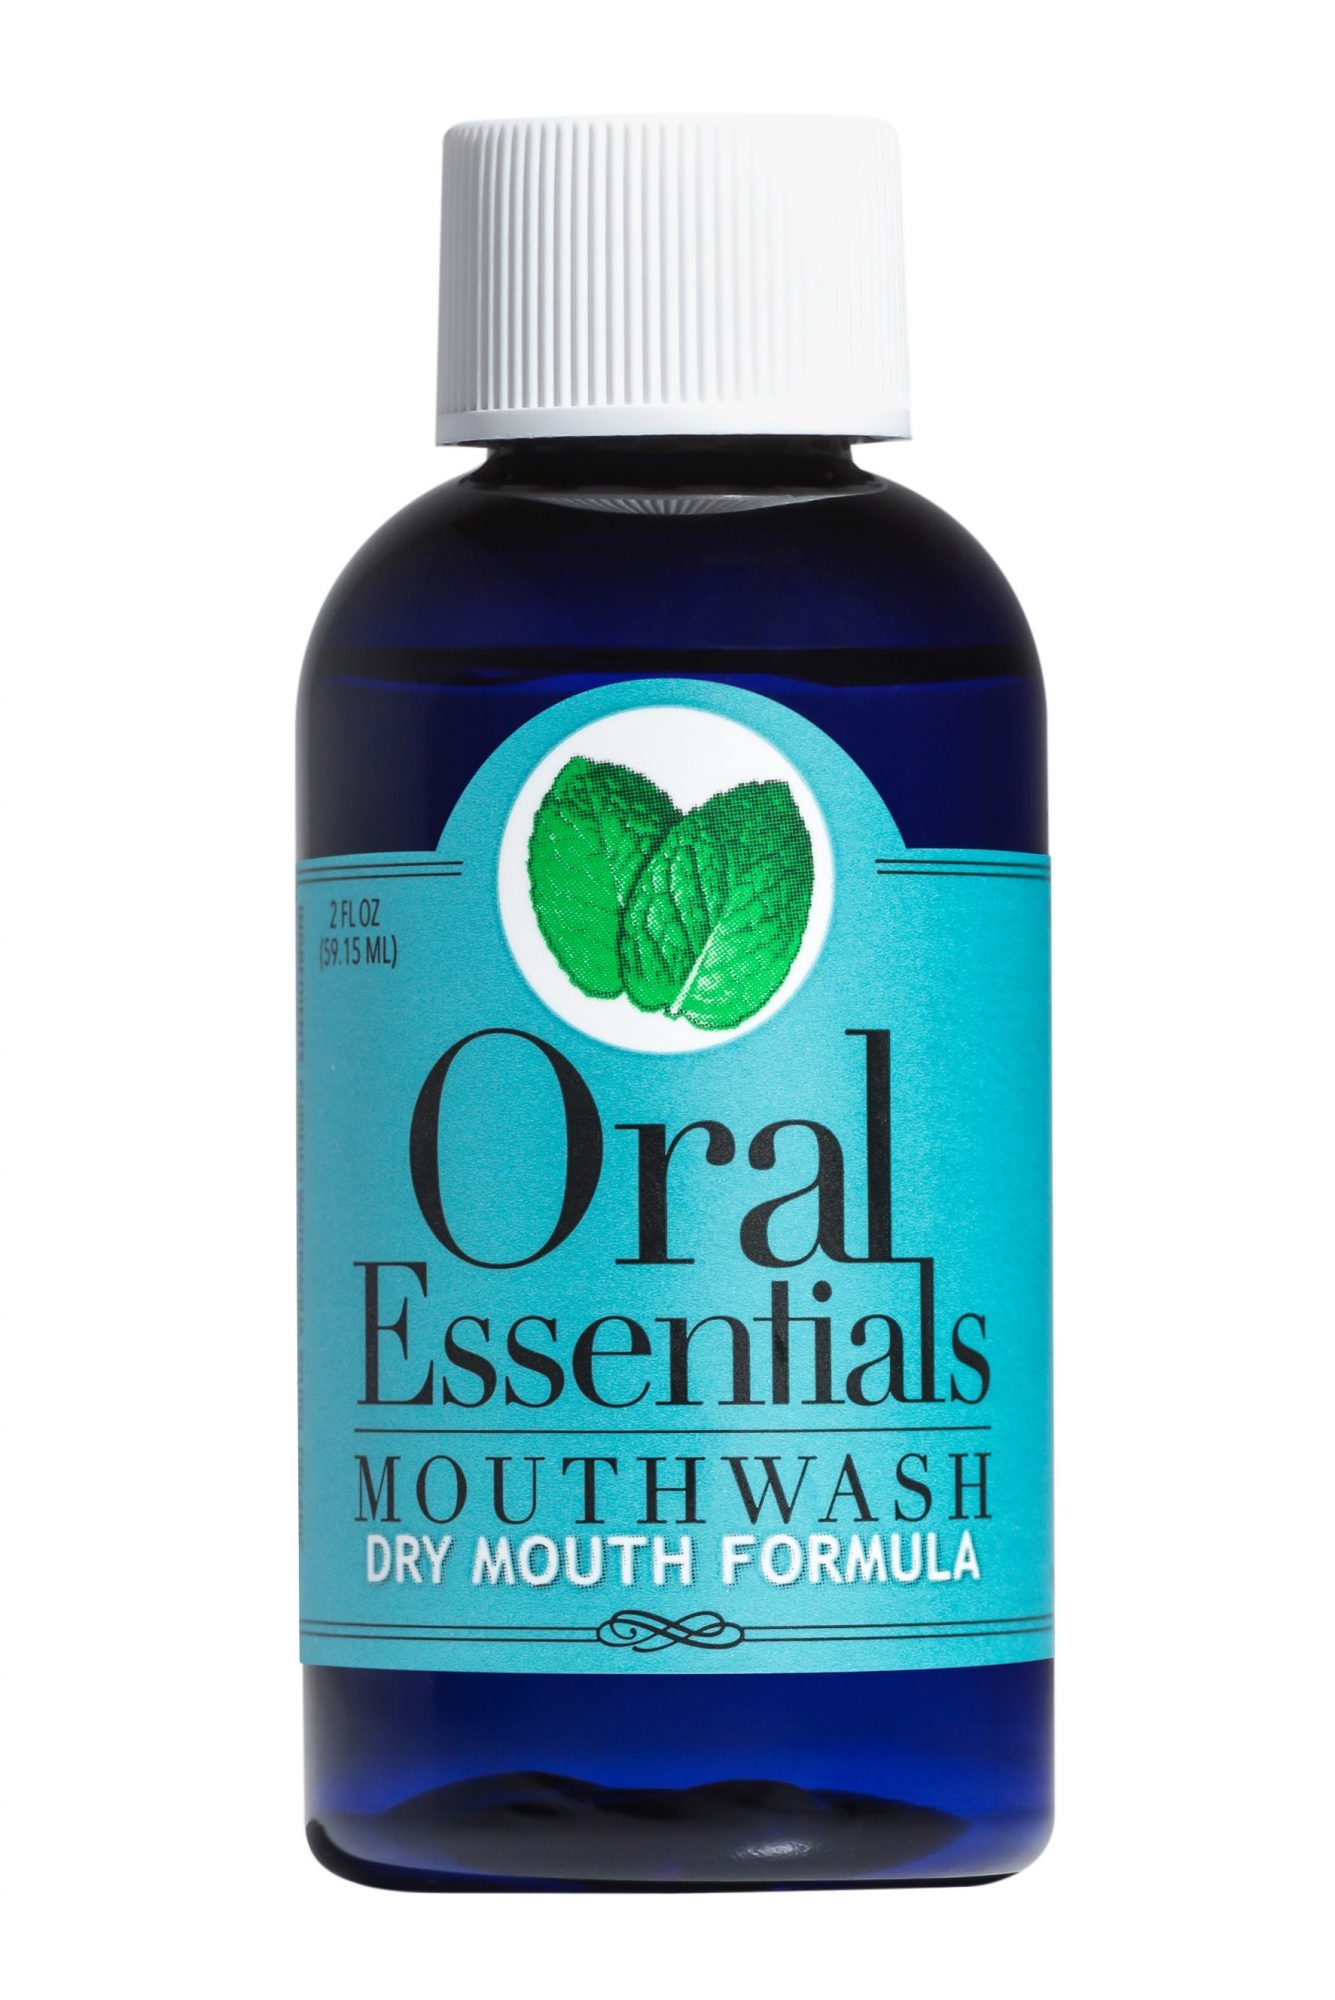 Oral Essentials Hydrating Travel Size Mouthwash